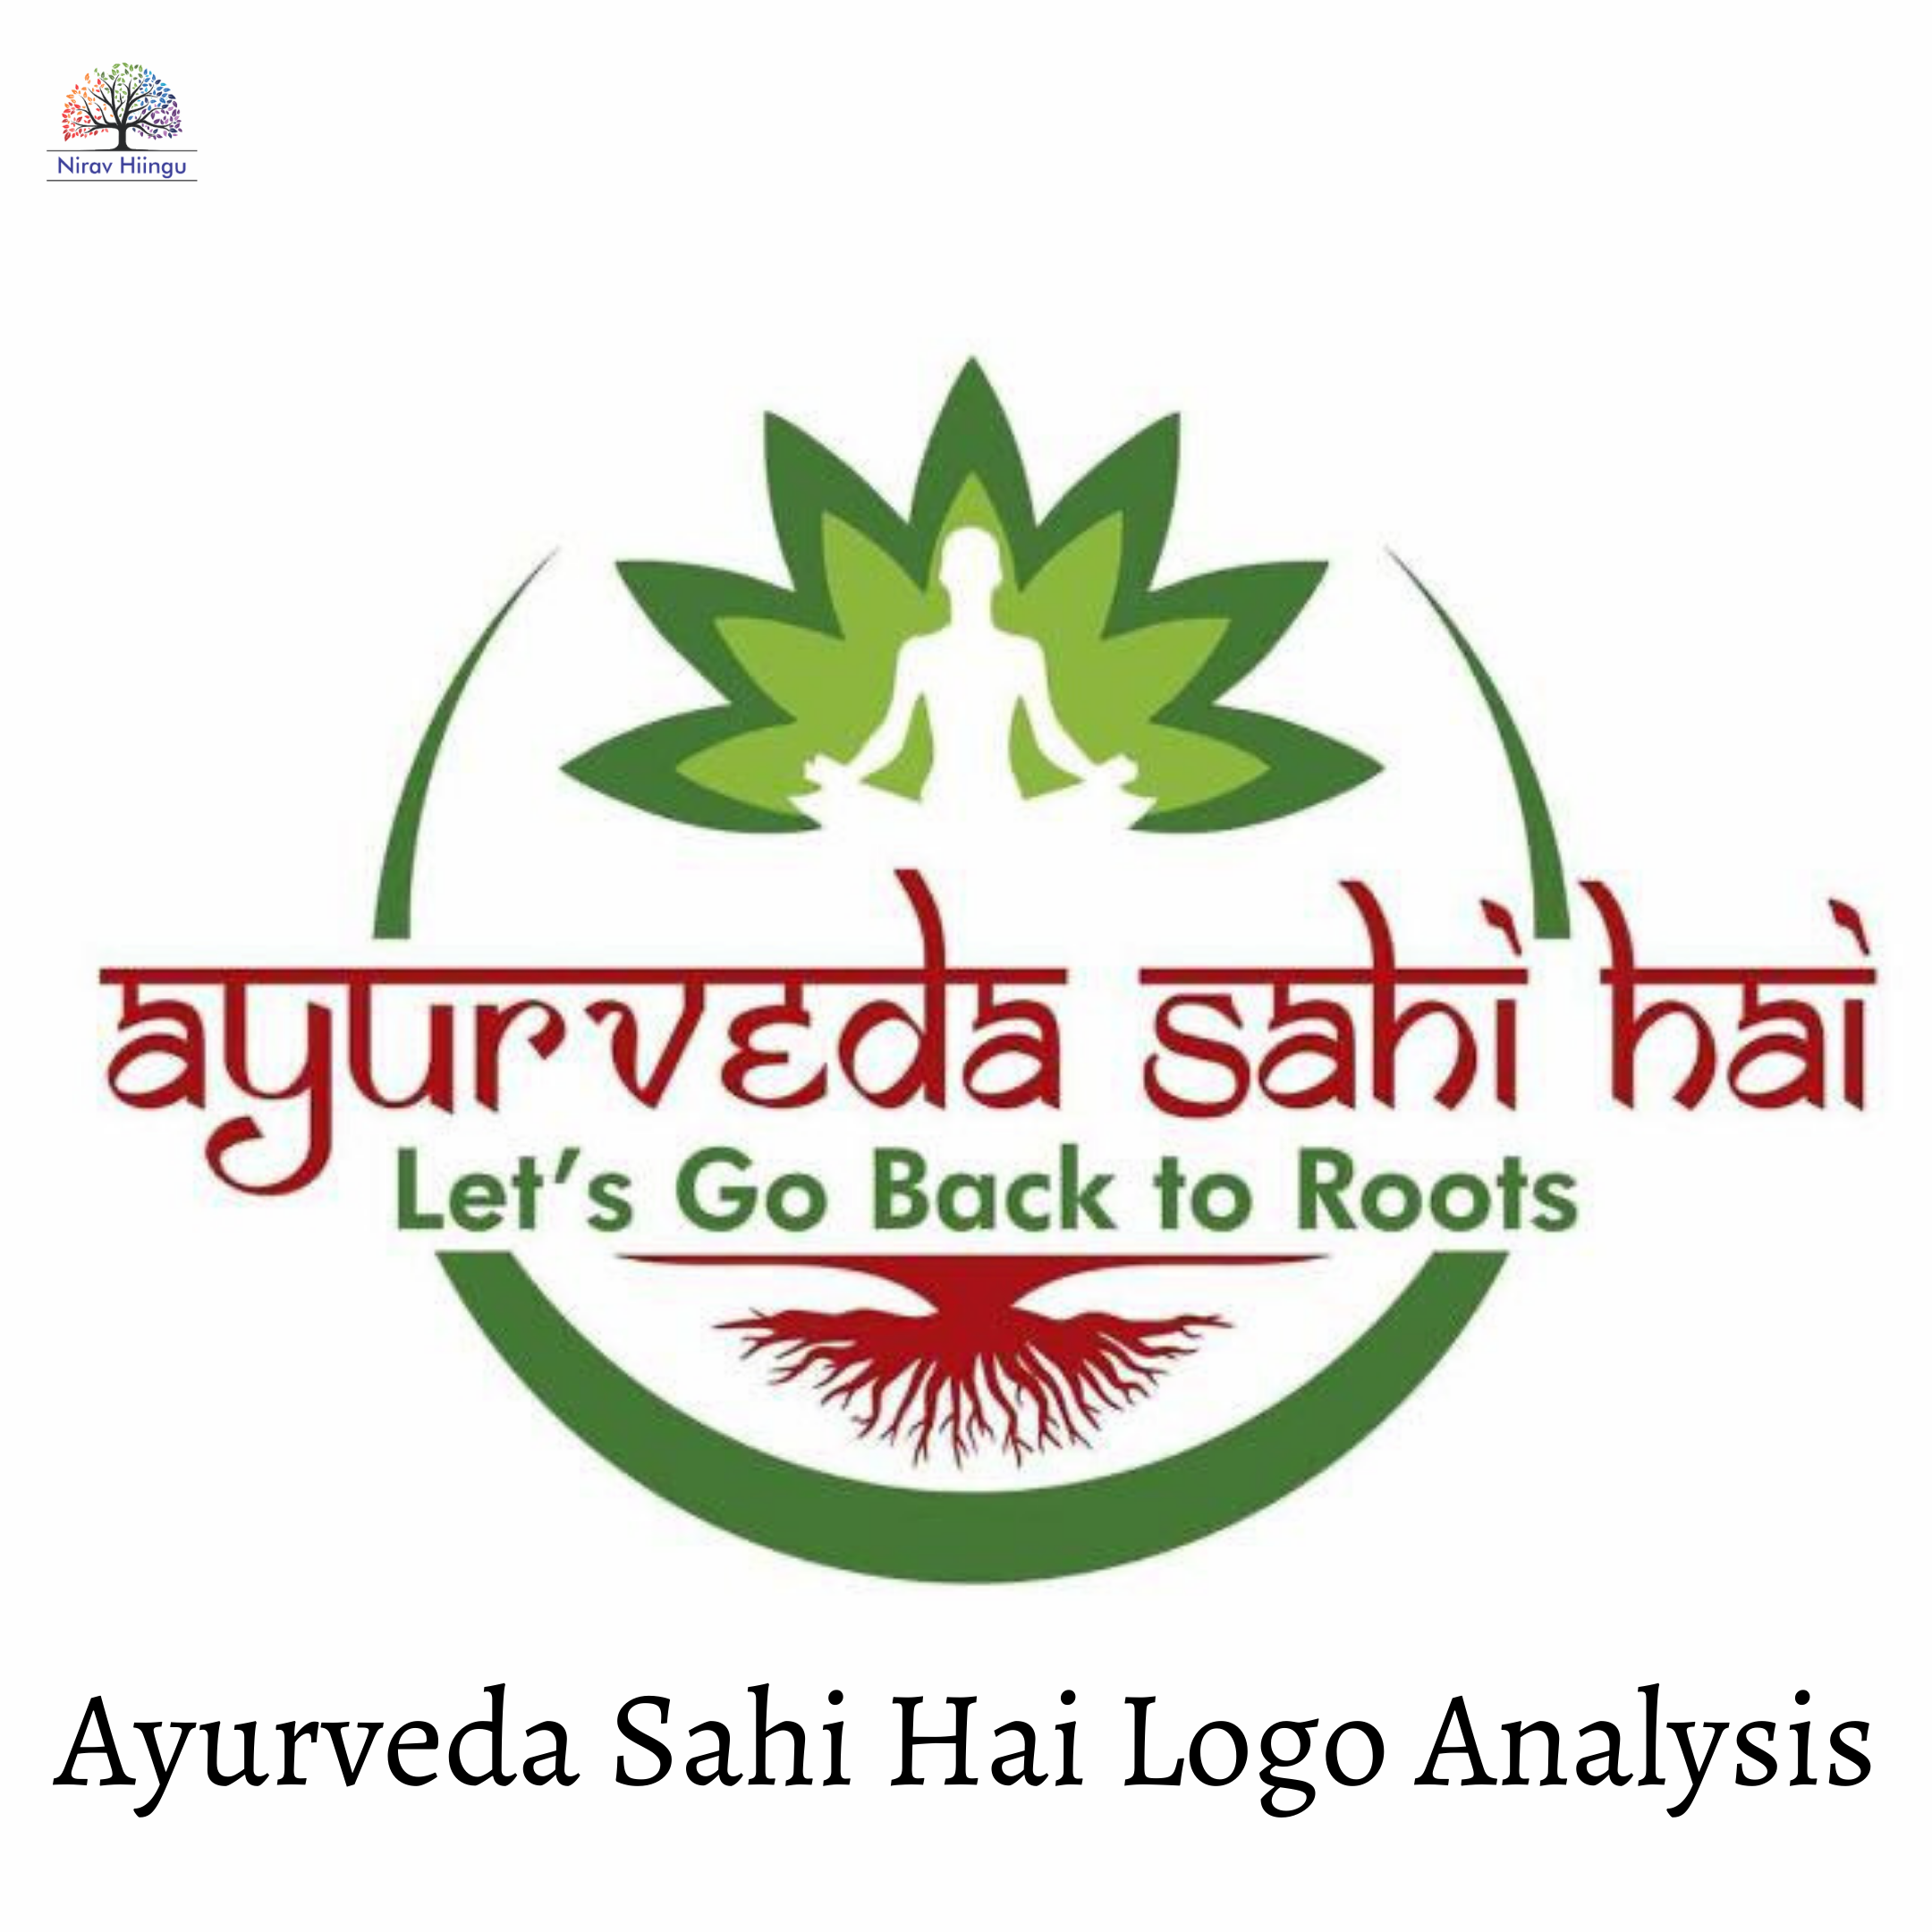 Ayurveda Sahi Hai Logo and Name Numerology Analysis